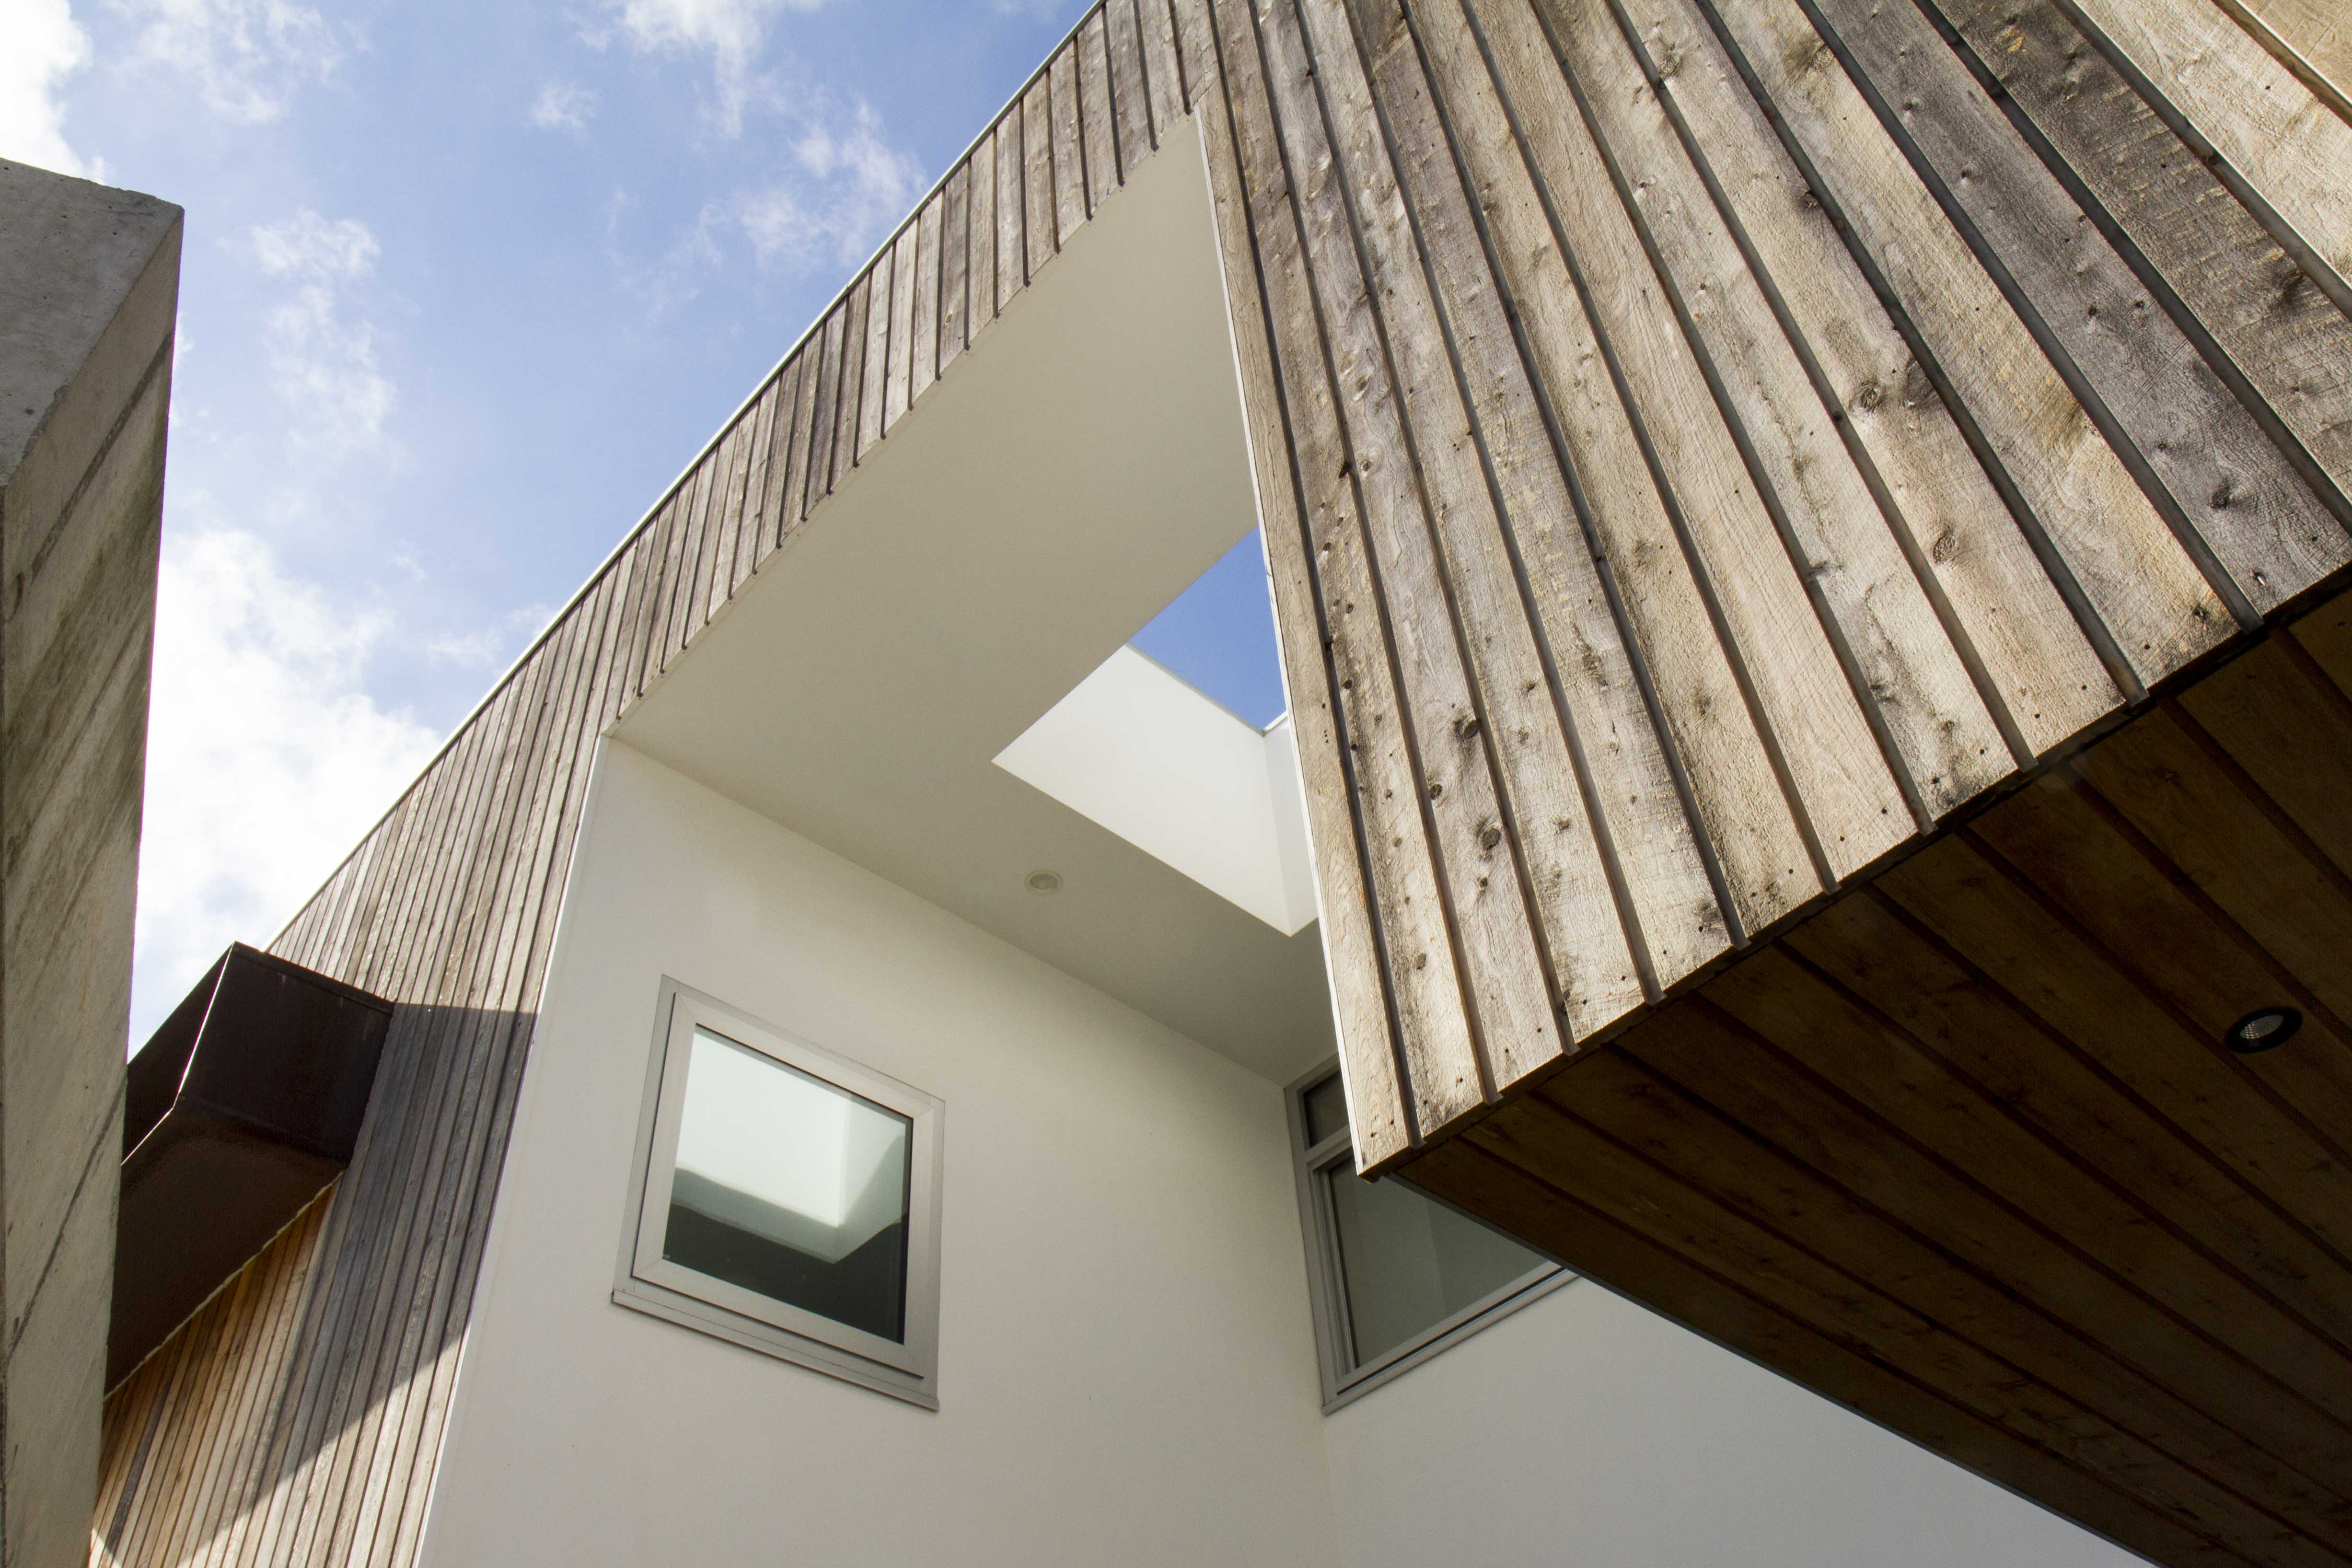 Gallery Of Silver Street House By Ehdo Architecture Local Design And Interiors South Fremantle, Wa Image 3